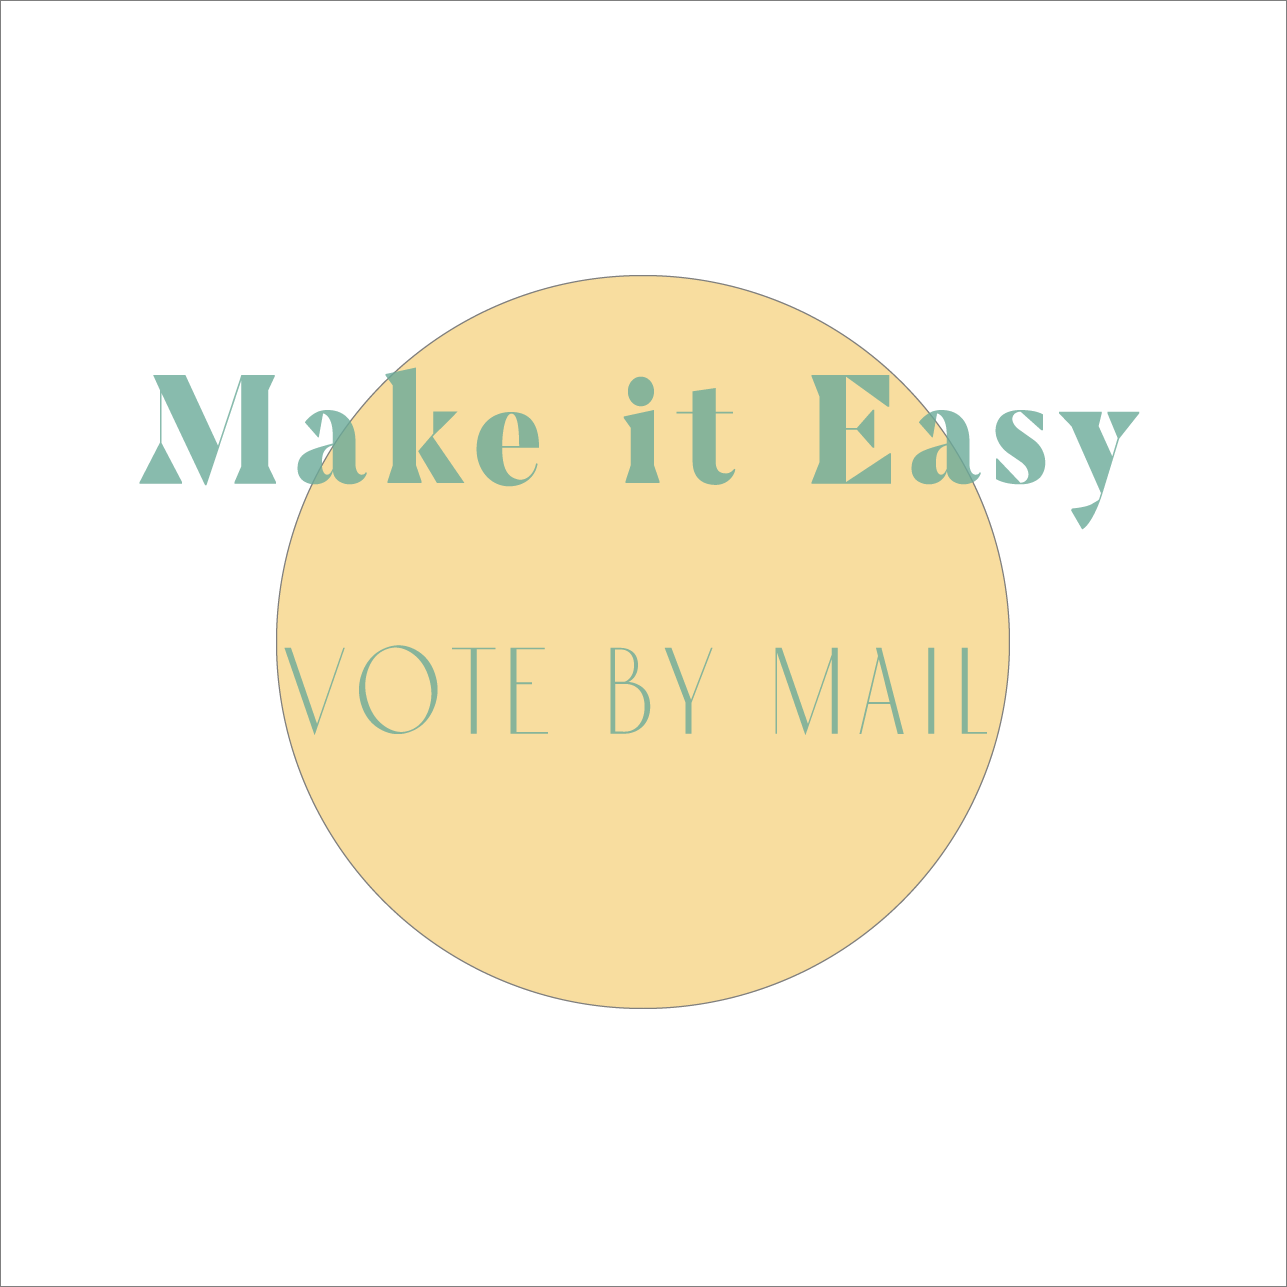 make it easy (new font)